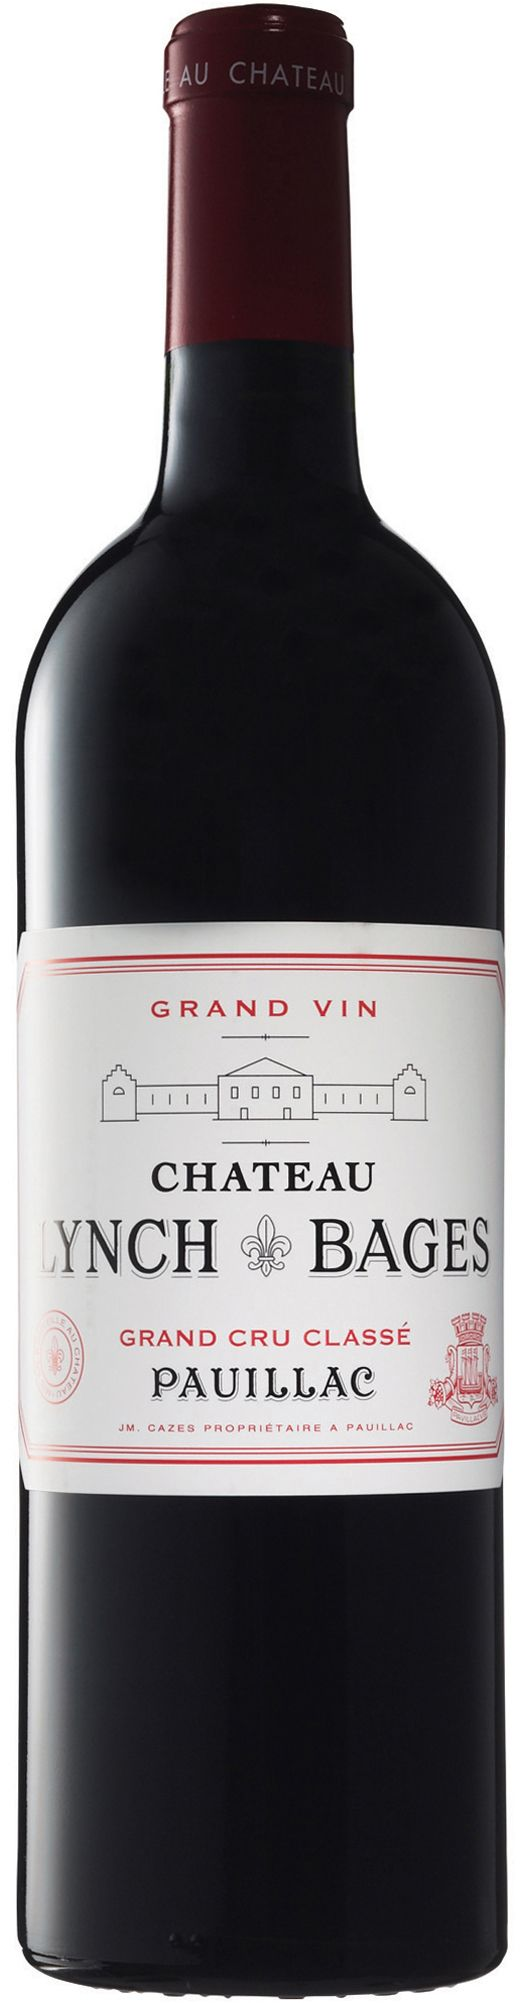 Chateau Lynch-Bages, 2011